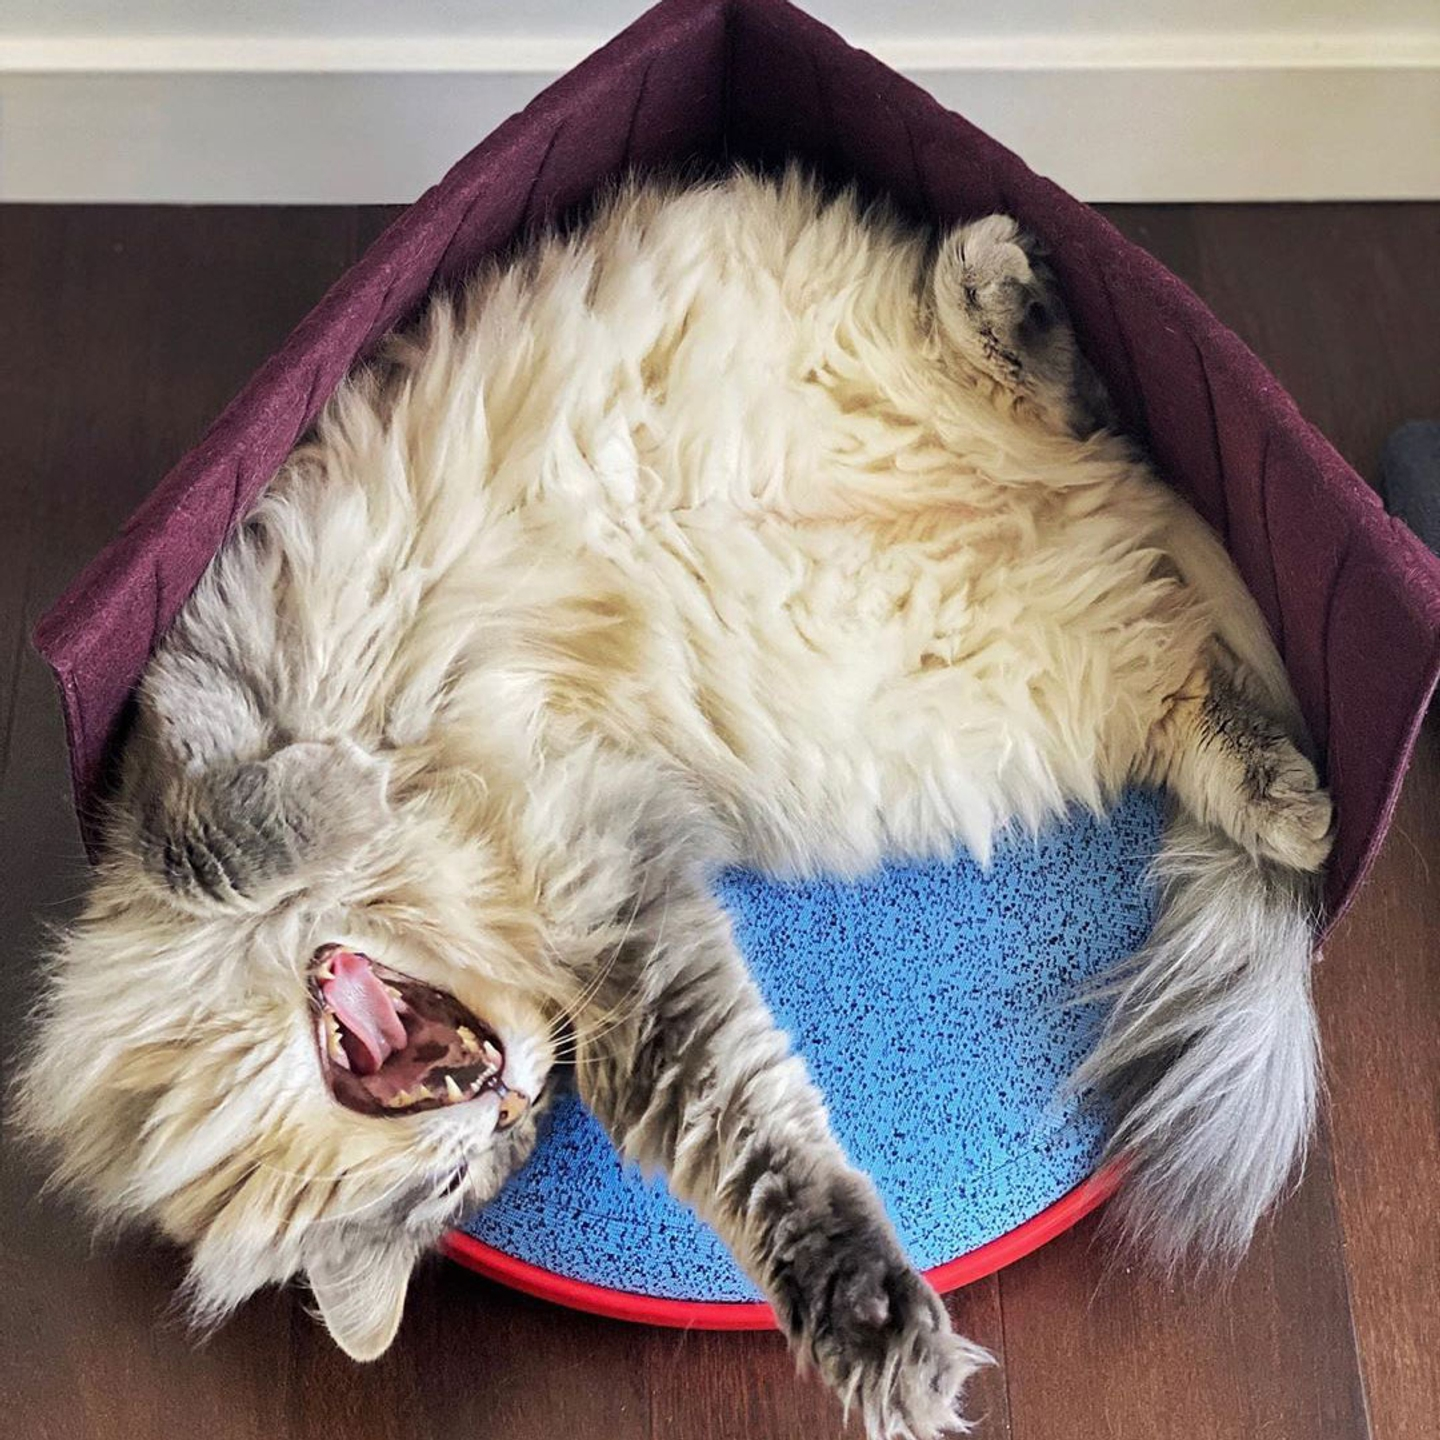 Long-haired cat stretching and yawning in a Cat Person Canopy Bed with the canopy folded over.